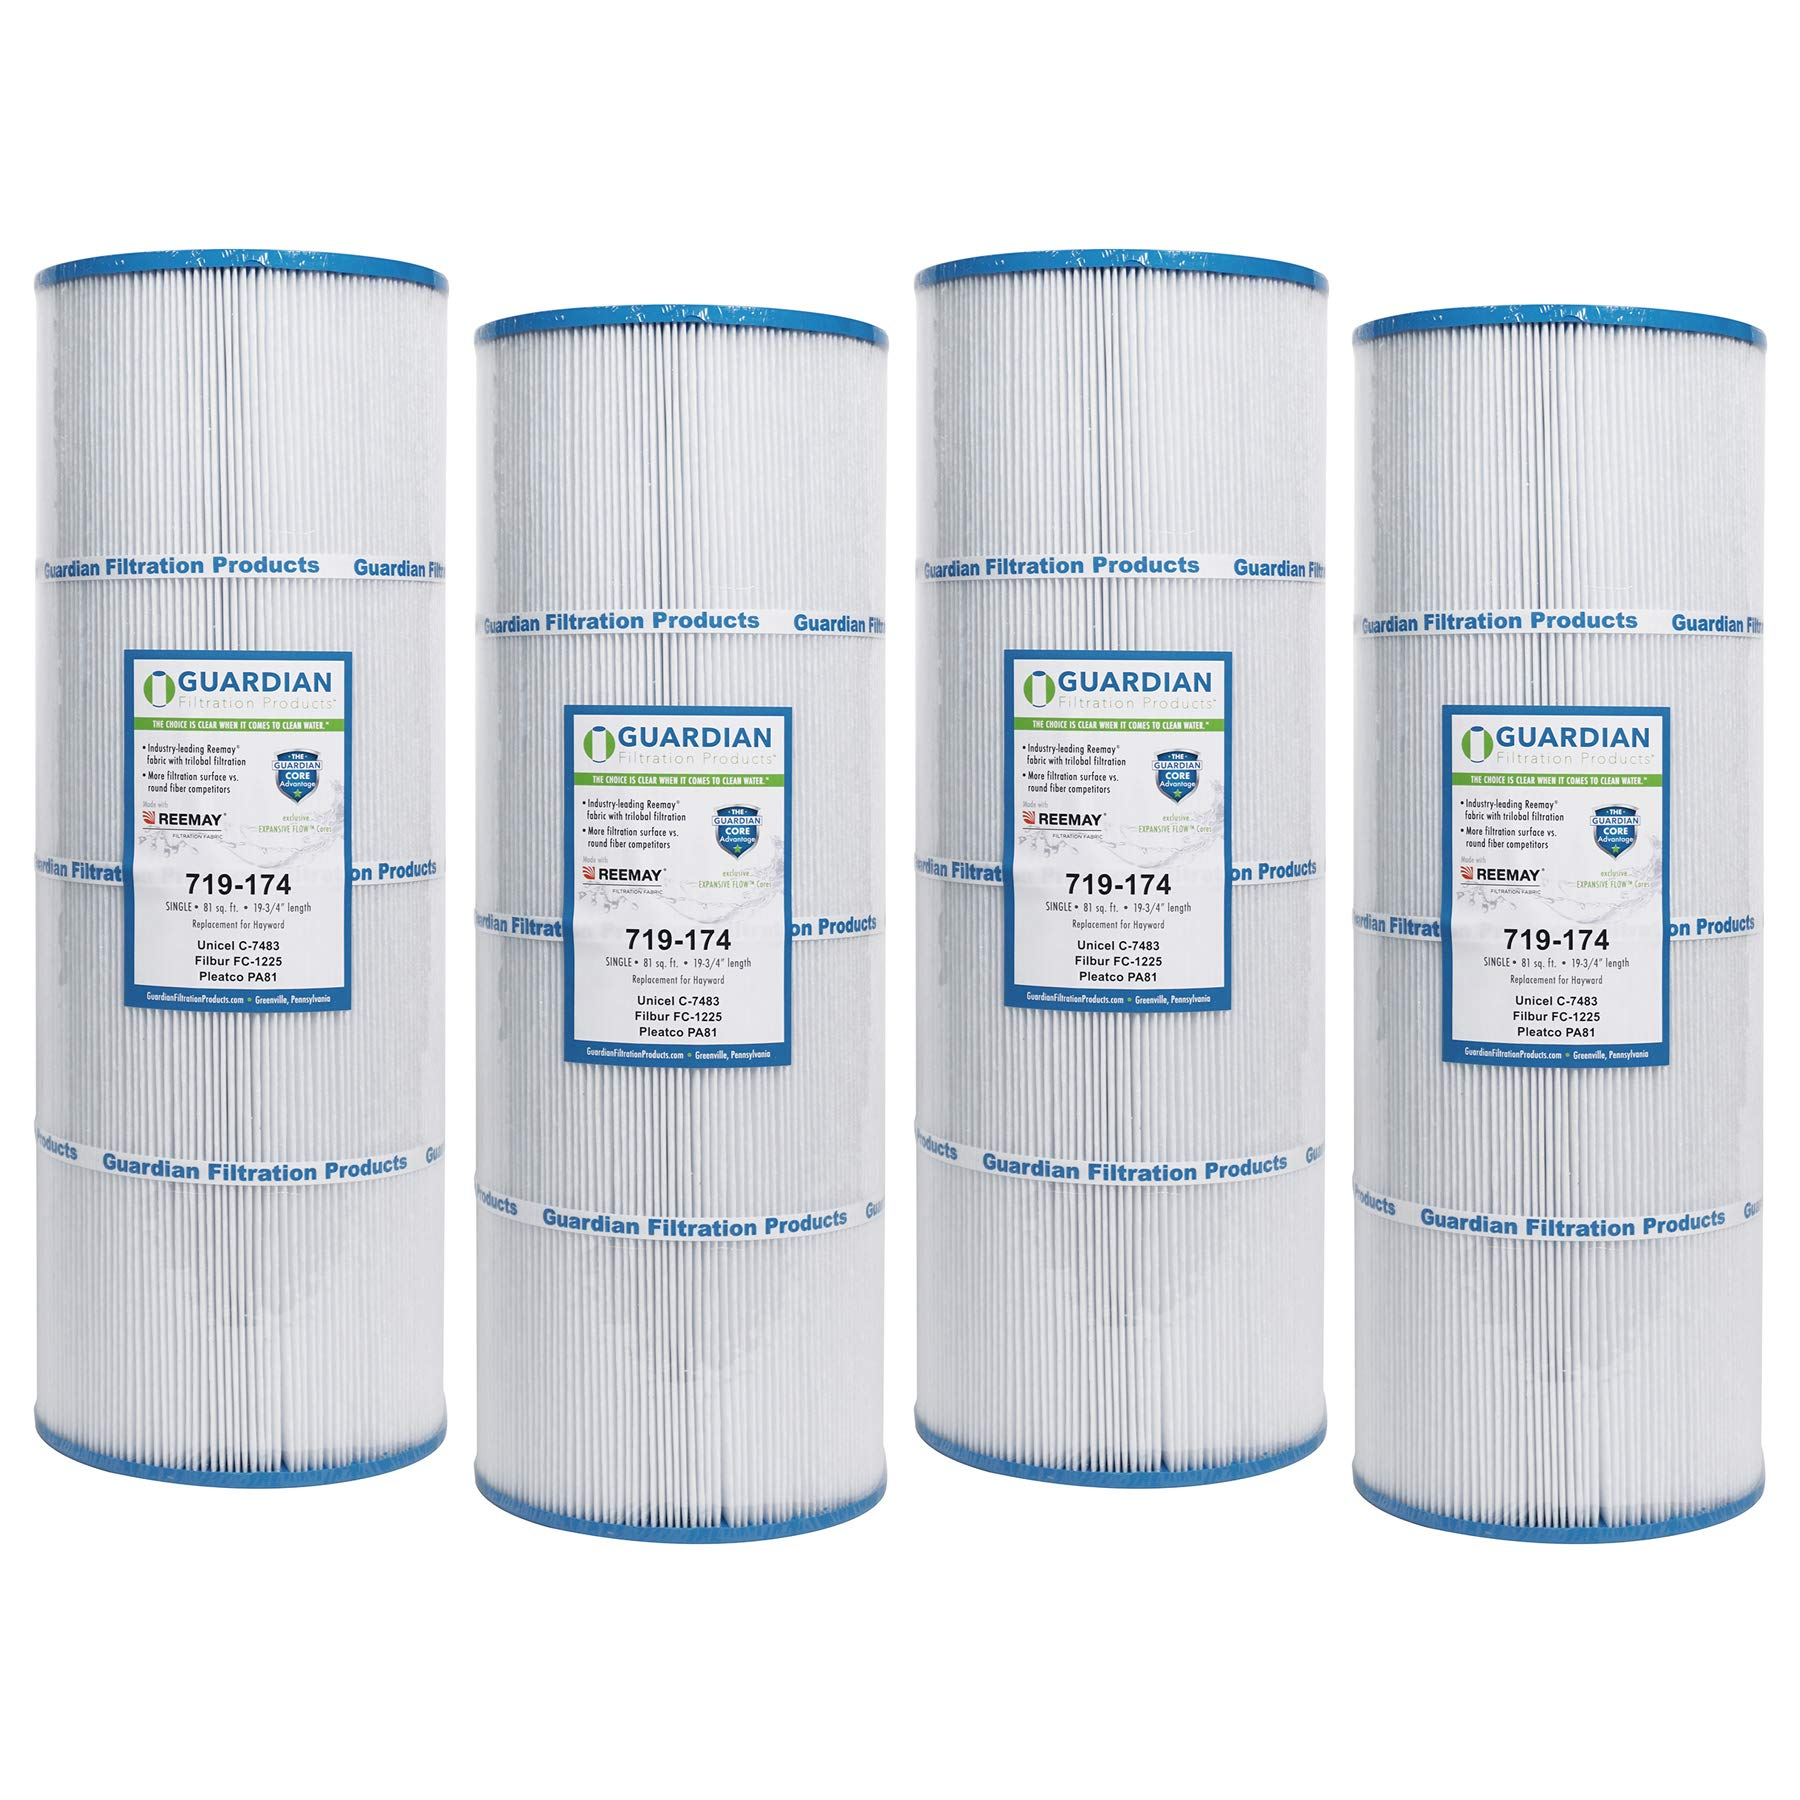 4 Guardian Pool Spa Filter Replaces C-7483 Hayward C3025 CX580XRE PA81 FC-1225 PA81-4, C-3020, C-570 by Guardian Filtration Products